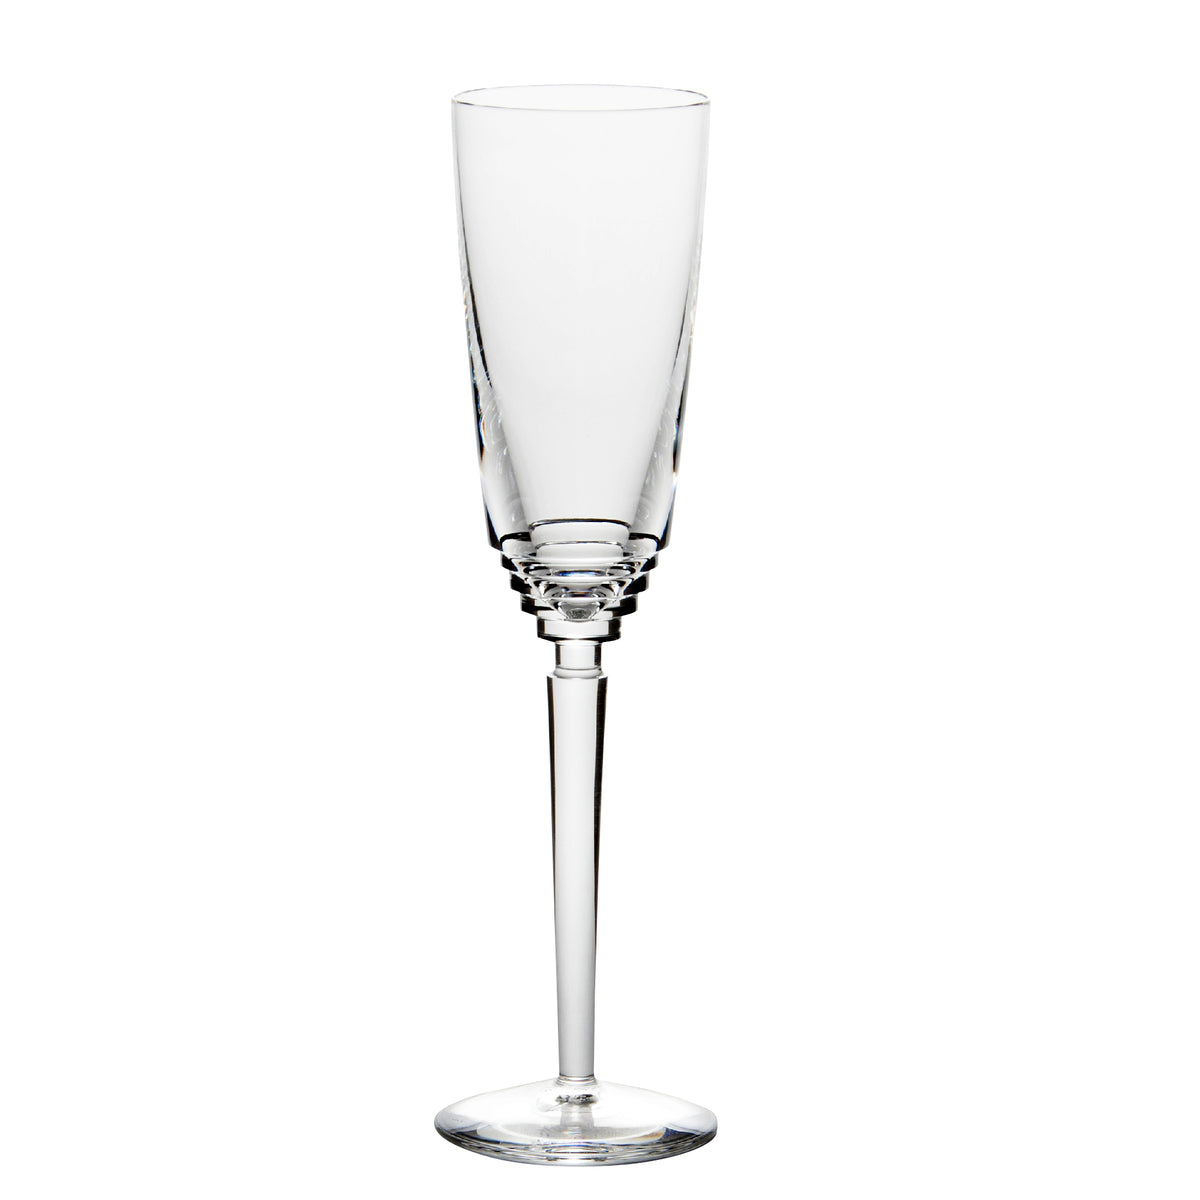 Oxymore Crystal Champagne Flute